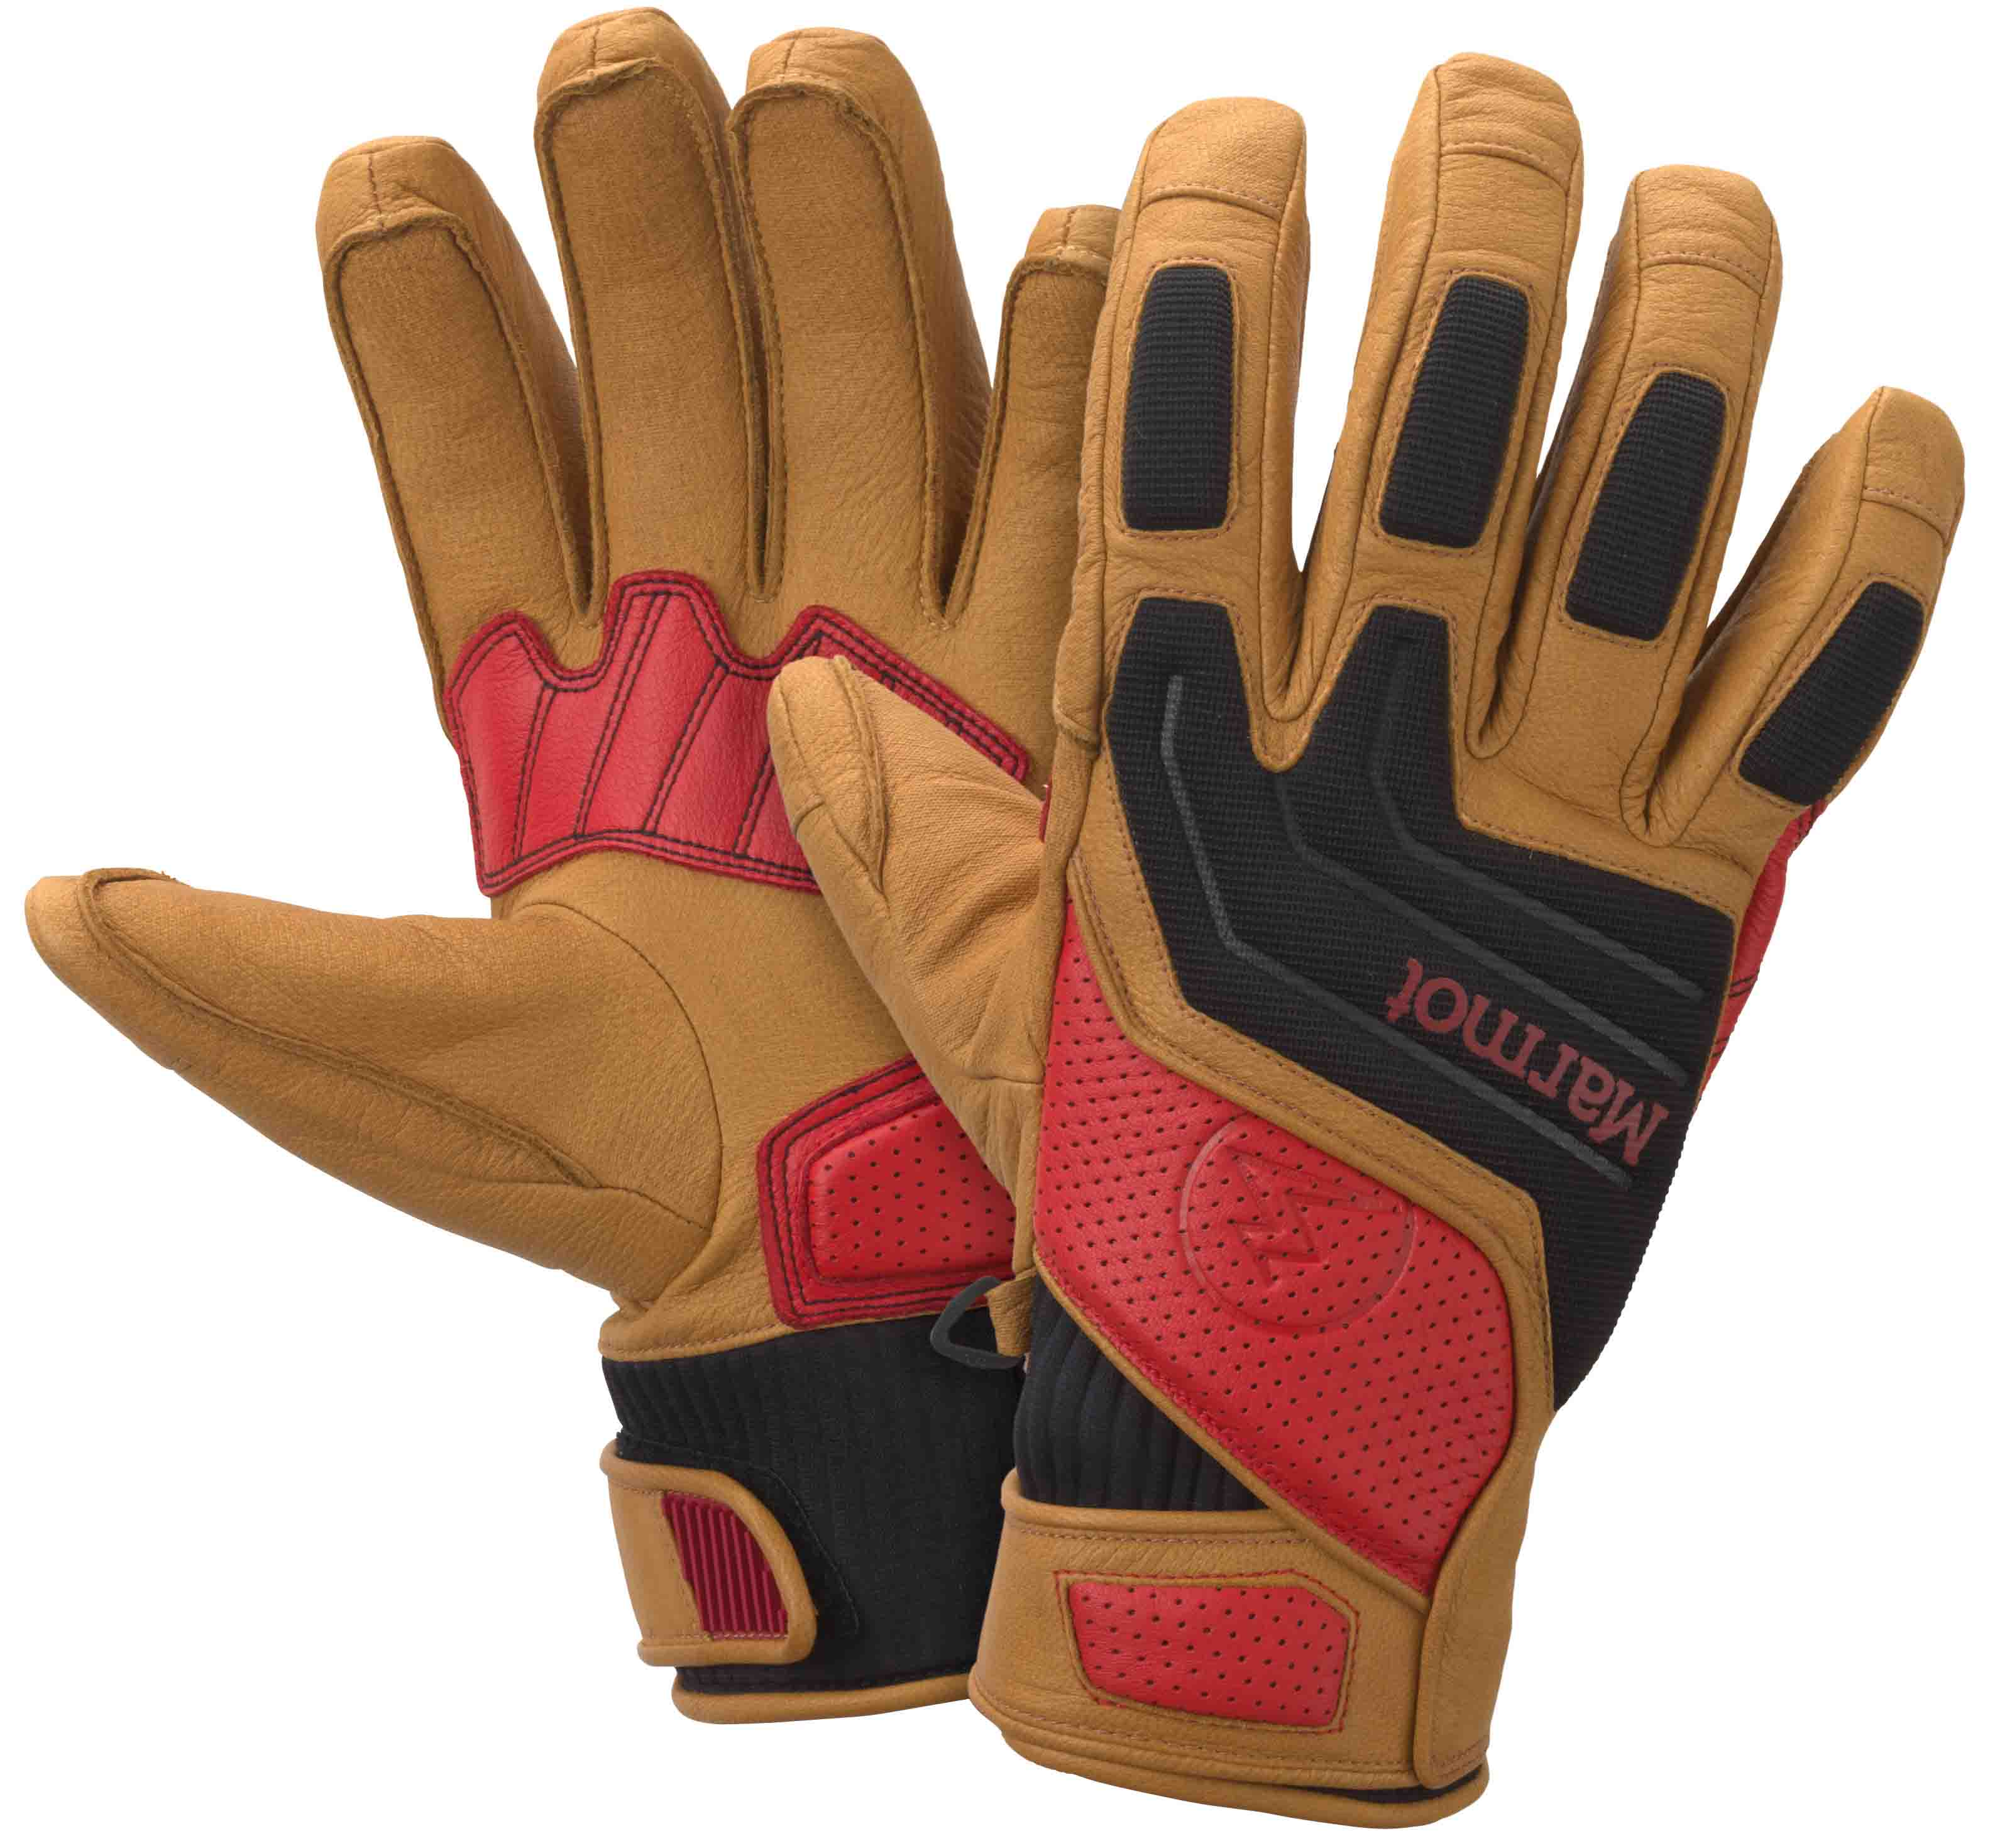 "Marmot Armageddon Glove - The Marmot Armageddon Glove uses a new application of Polartecr Thermal Pror, the latest evolution of synthetic insulation offering a rare combination of lightweight warmth and true breathability. Because Polartecr Thermal Pror insulation is highly durable and more stable than other synthetic insulation products, an open-construction interior fabric was selected to create an air-permeable package. This small amount of airflow rapidly draws moisture away from the hands and allows Polartecr Thermal Pror to be worn in a wider range of activities compared to classic ""vapor barrier"" style insulation."